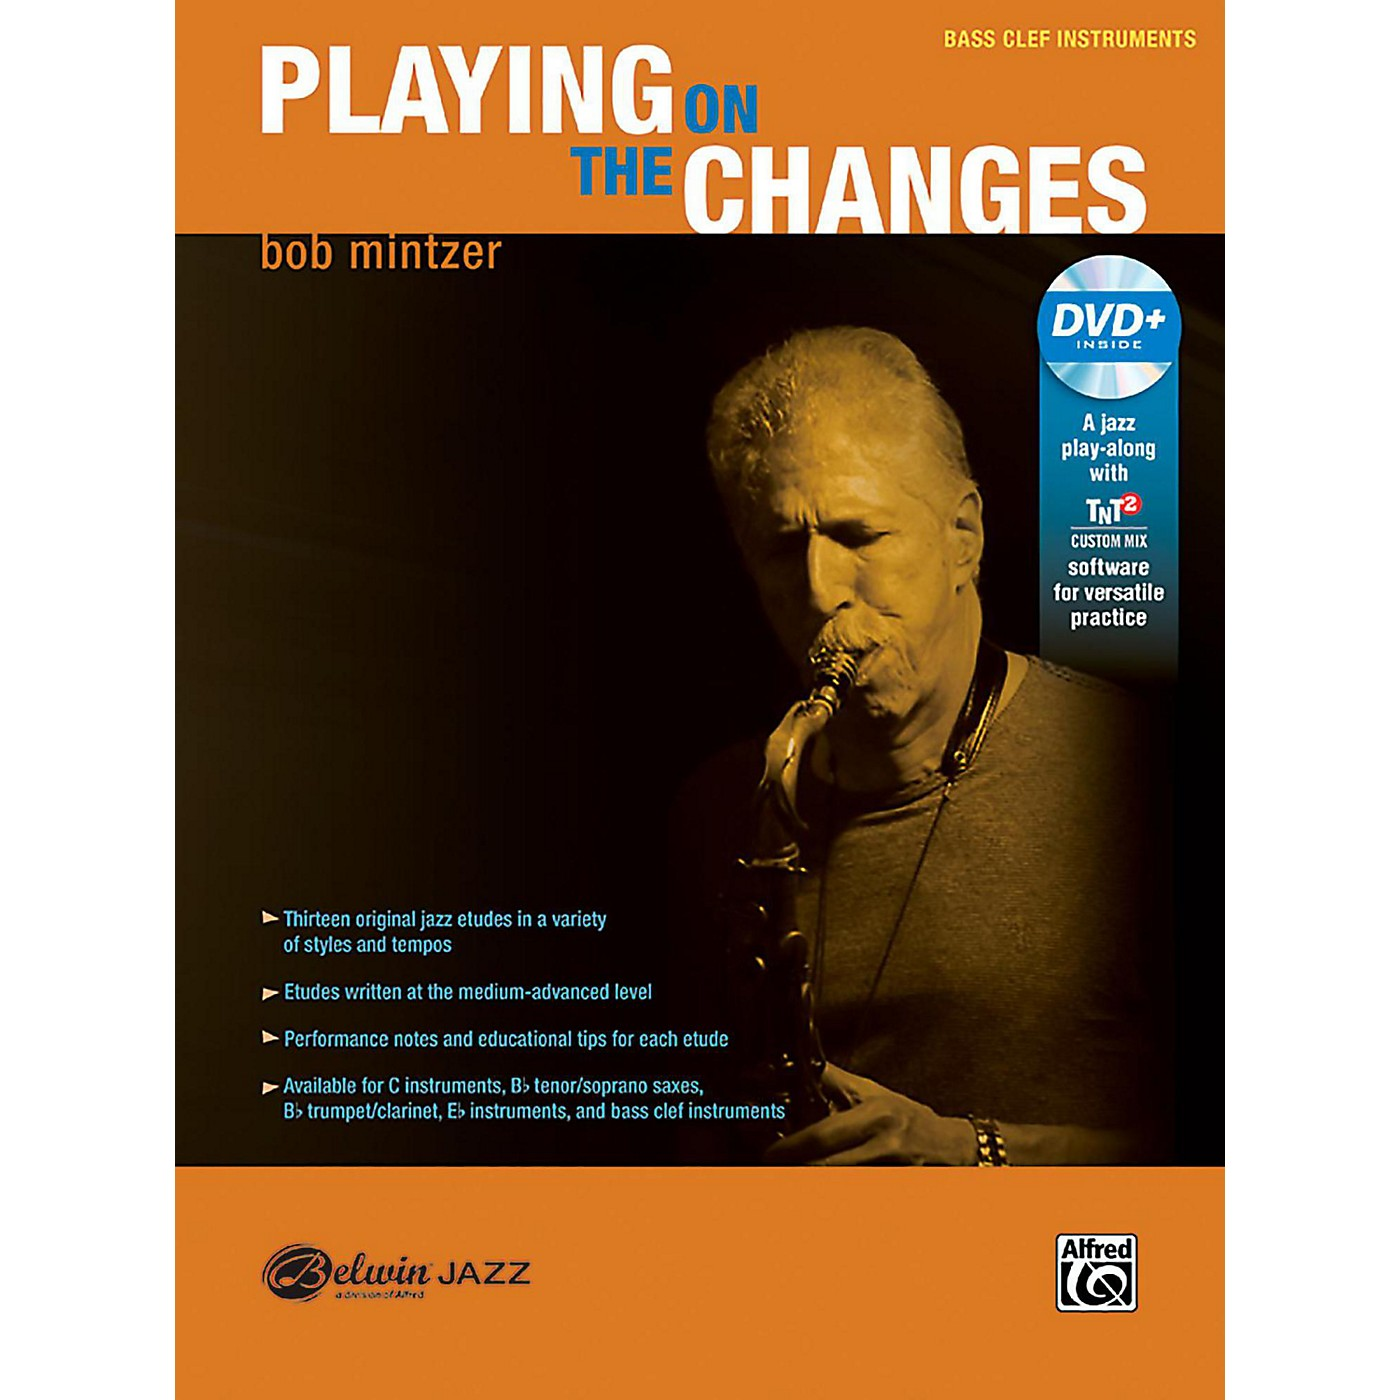 BELWIN Playing on the Changes Bass Clef Instruments Book & DVD thumbnail